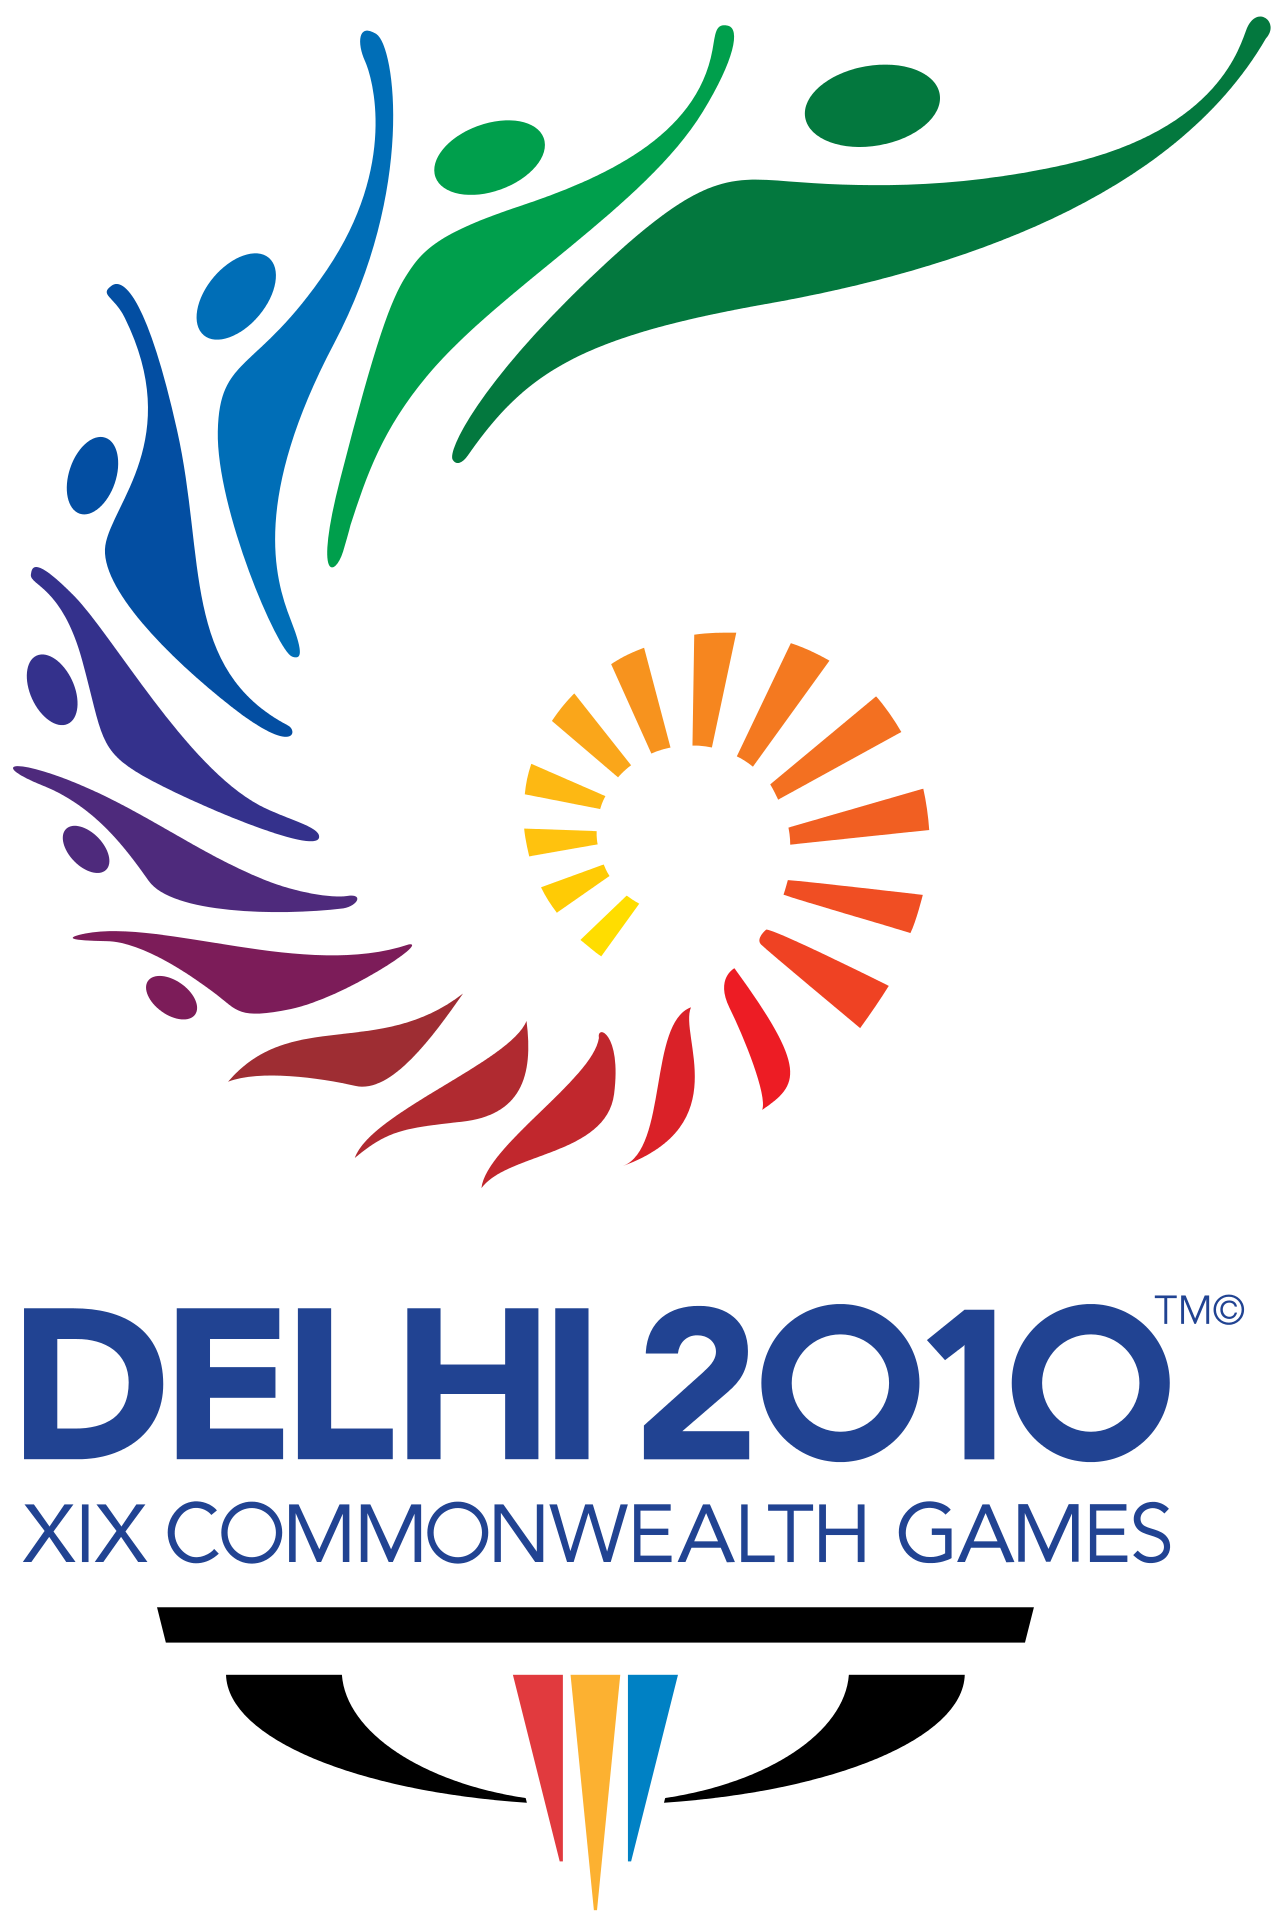 The 2010 Commonwealth Games Officially Known As The Xix Commonwealth Games Were Held In Delhi India From Commonwealth Games Commonwealth Multi Sport Event